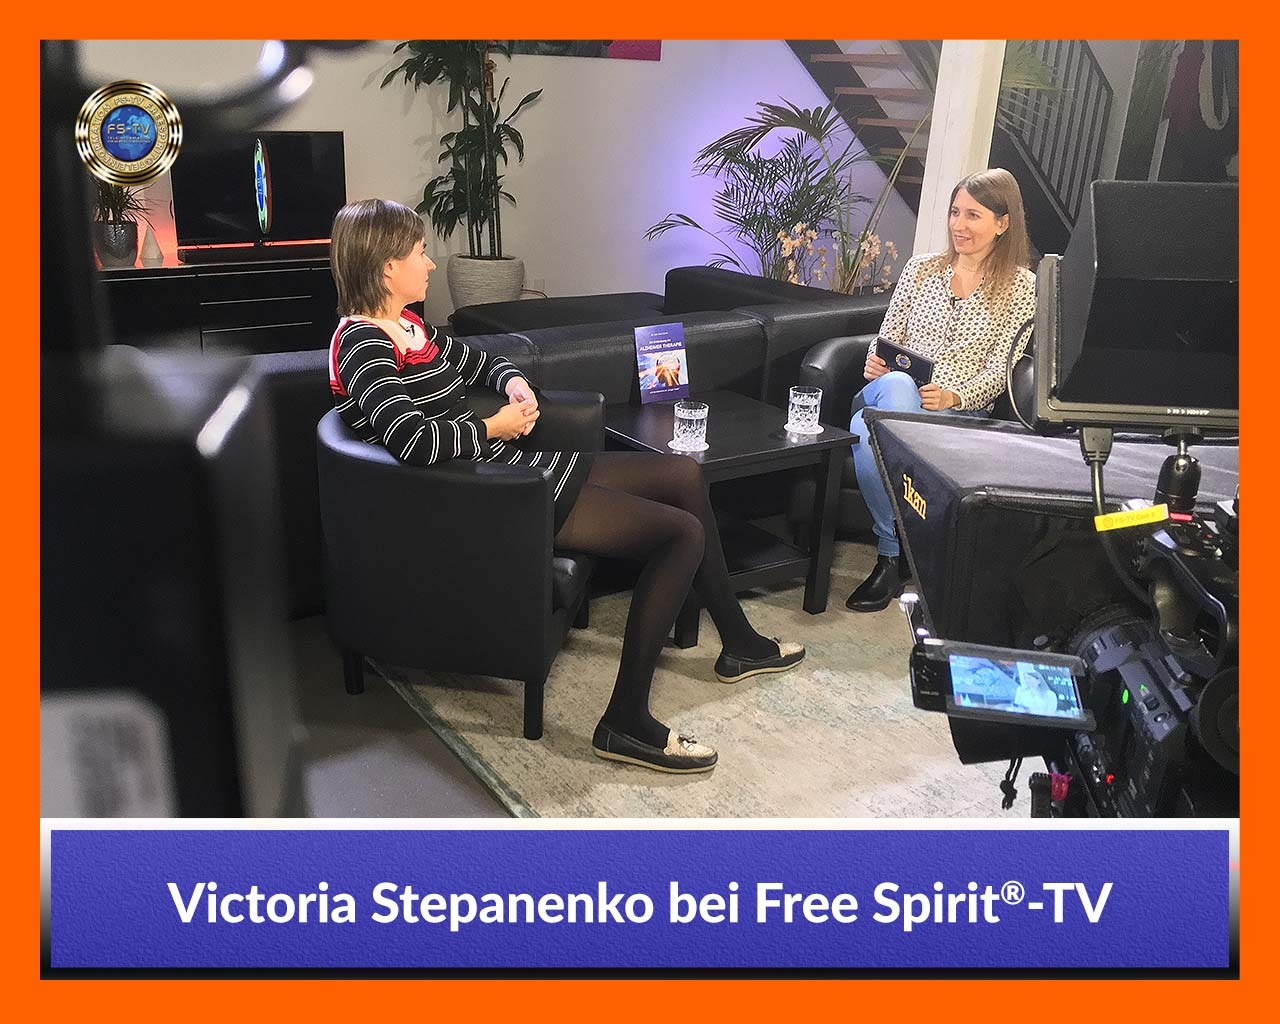 Galleriebild-Victoria-Stepanenko-11